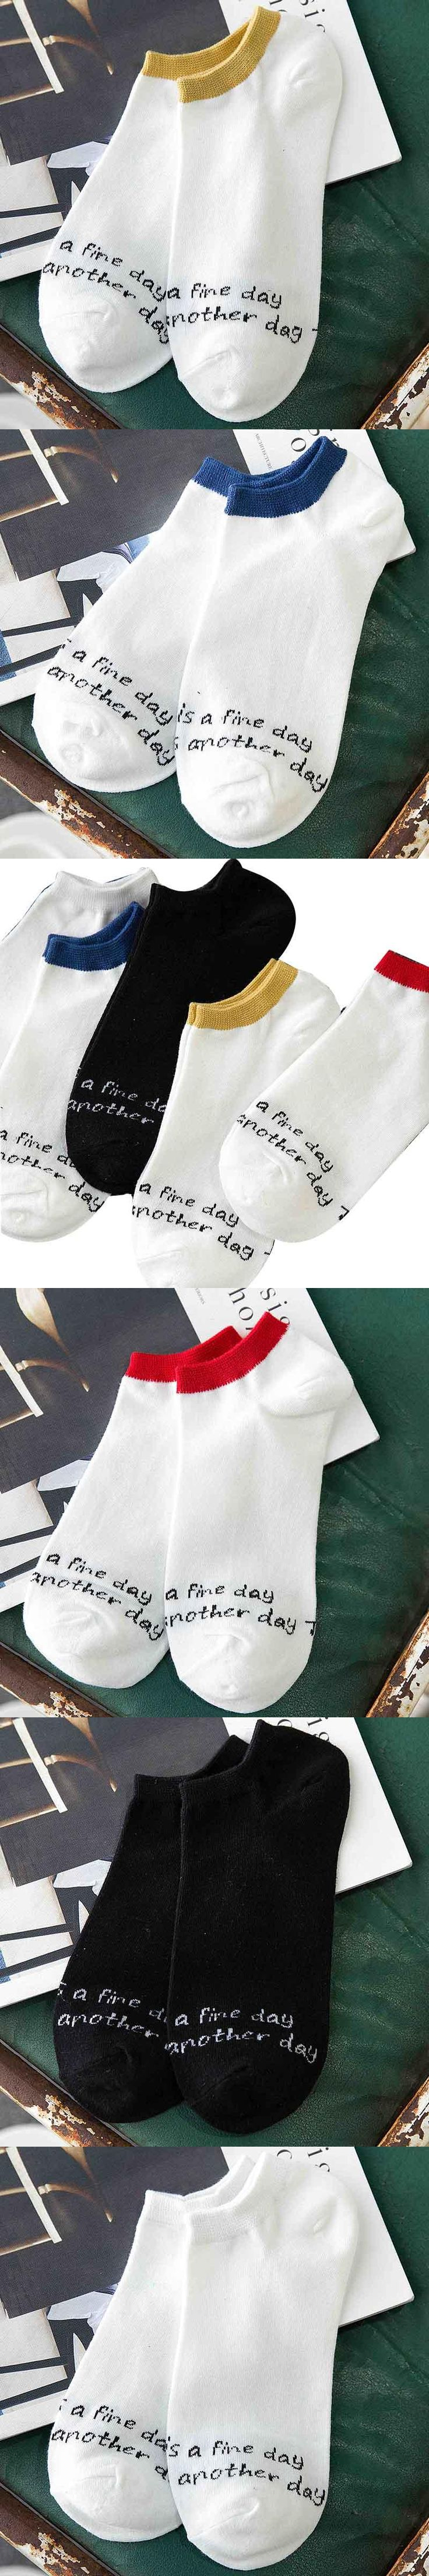 English alphabet trendy 5 colors new arrival fashion men quality Men's casual stealth boat socks for spring and summer